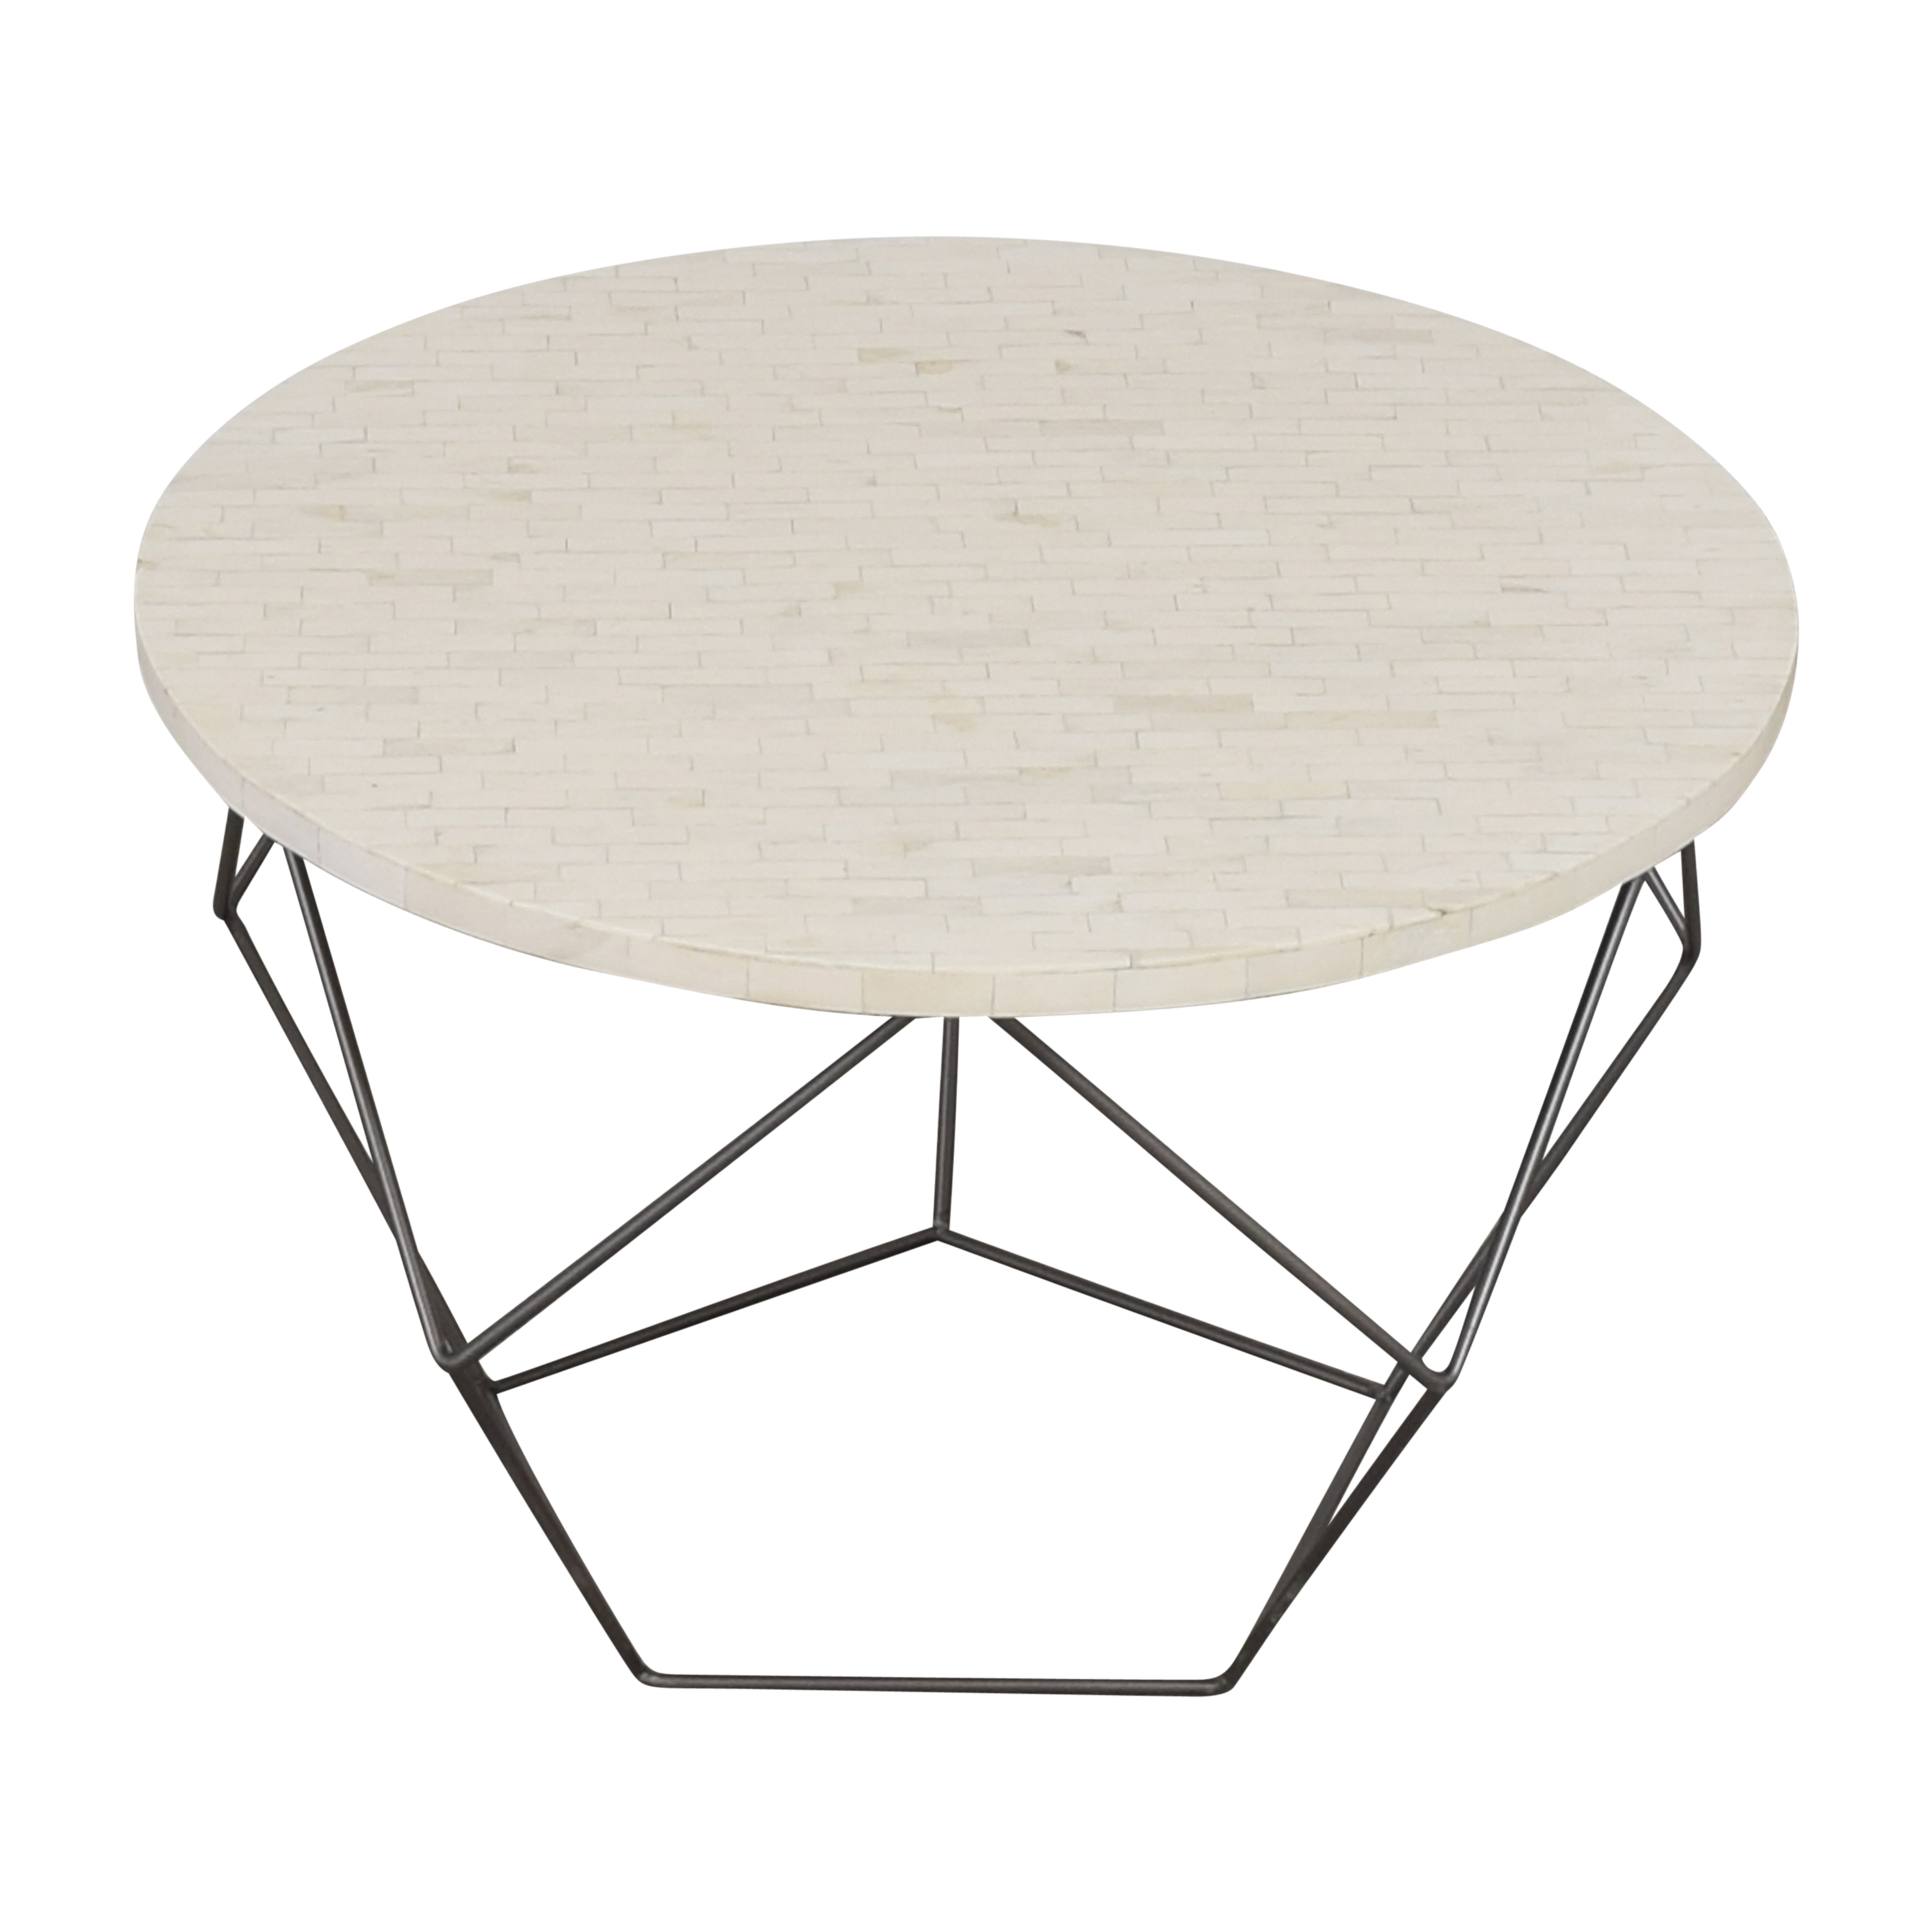 West Elm West Elm Origami Coffee Table dimensions